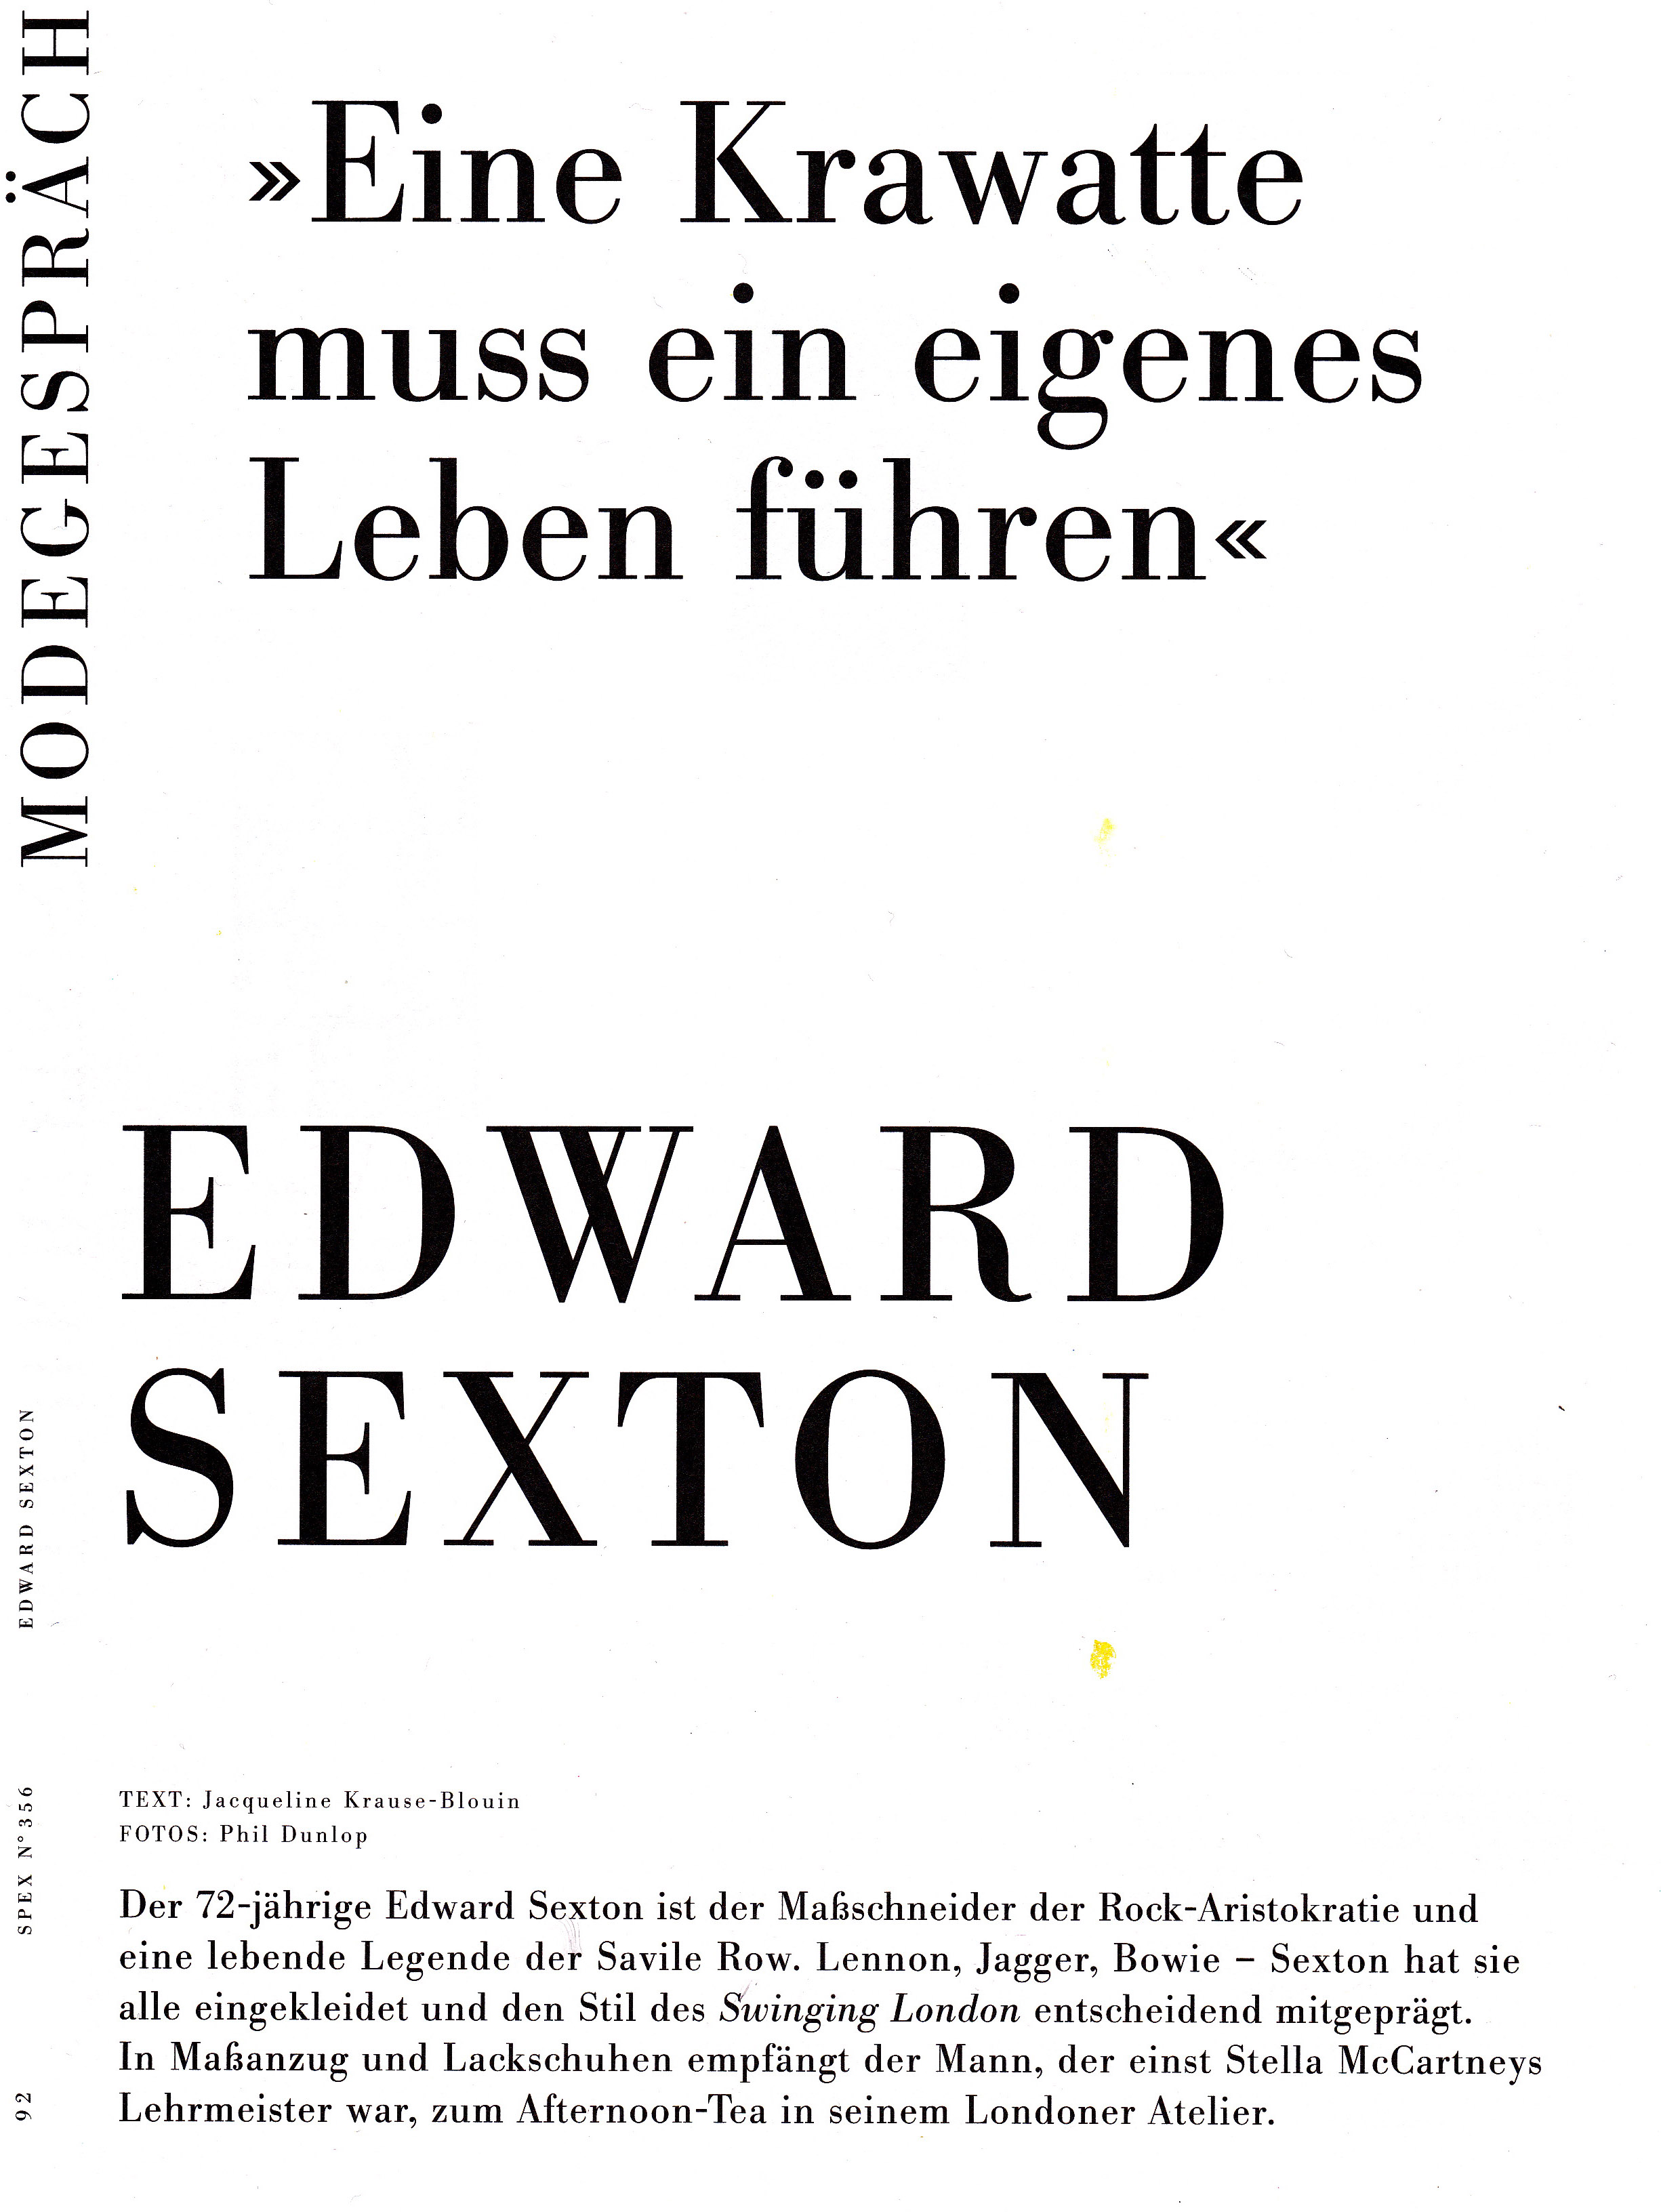 Edward Sexton German Article